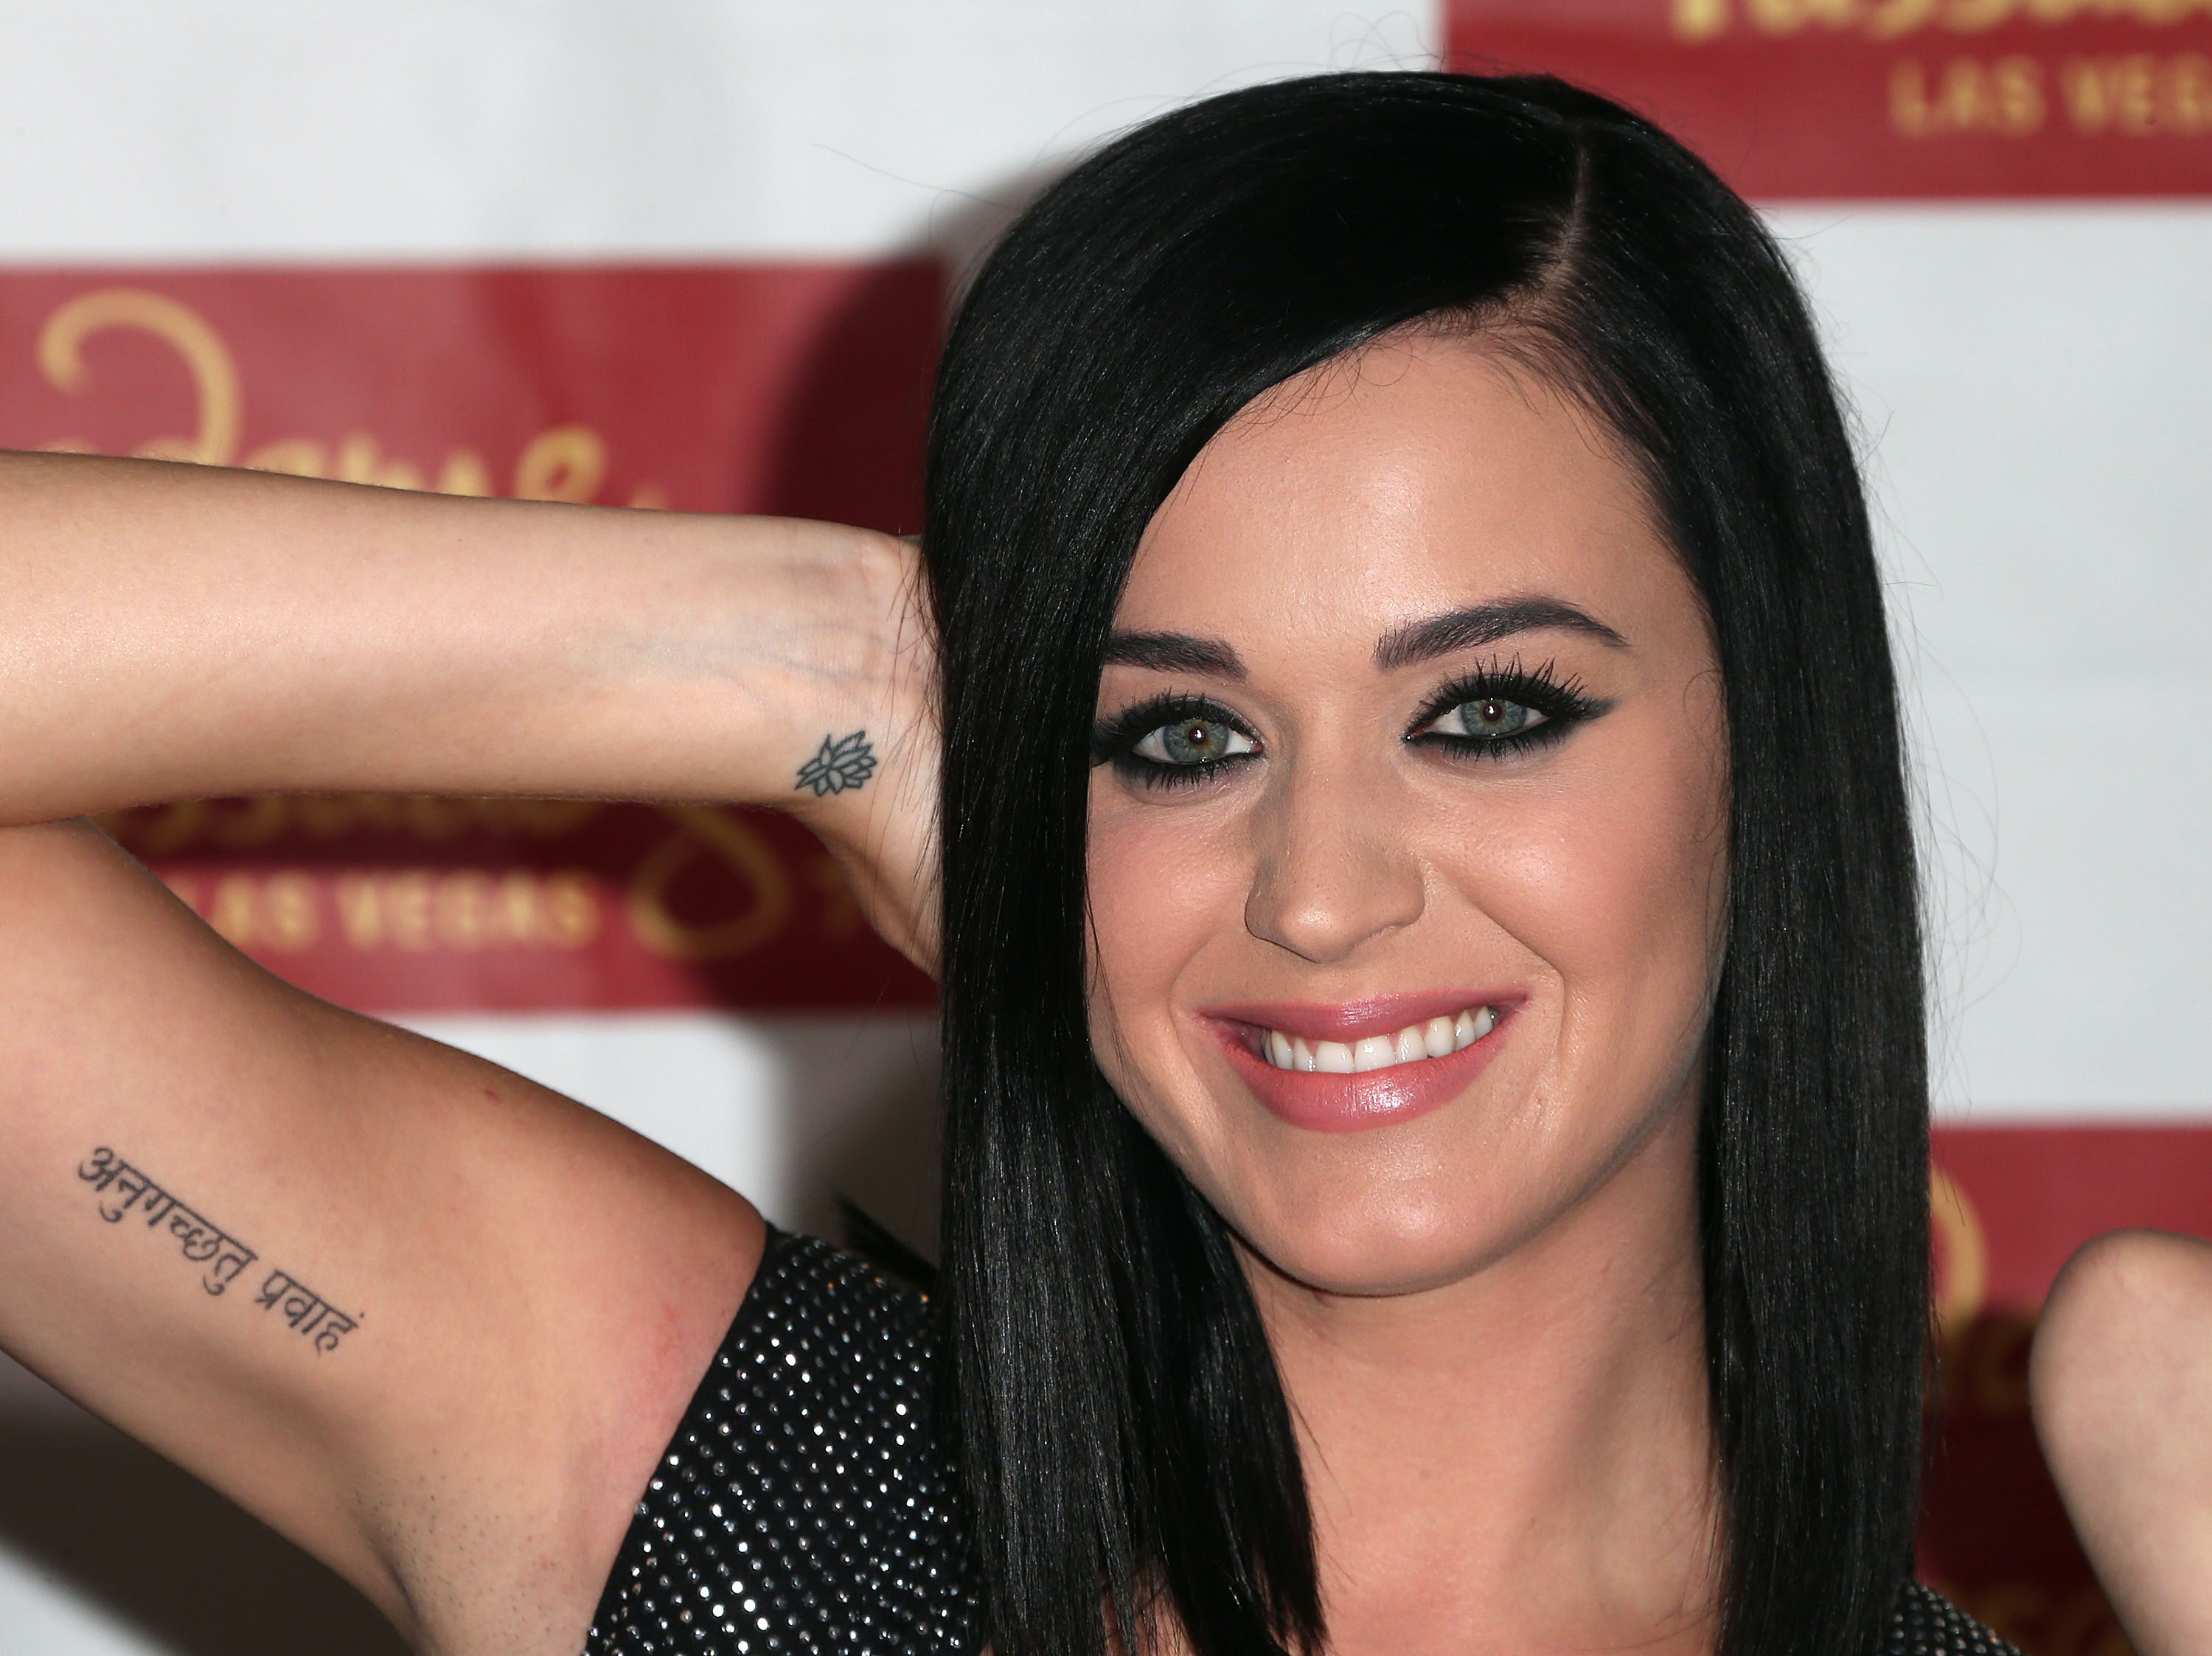 How Many Tattoos Does Katy Perry Have She Keeps Em Small So More